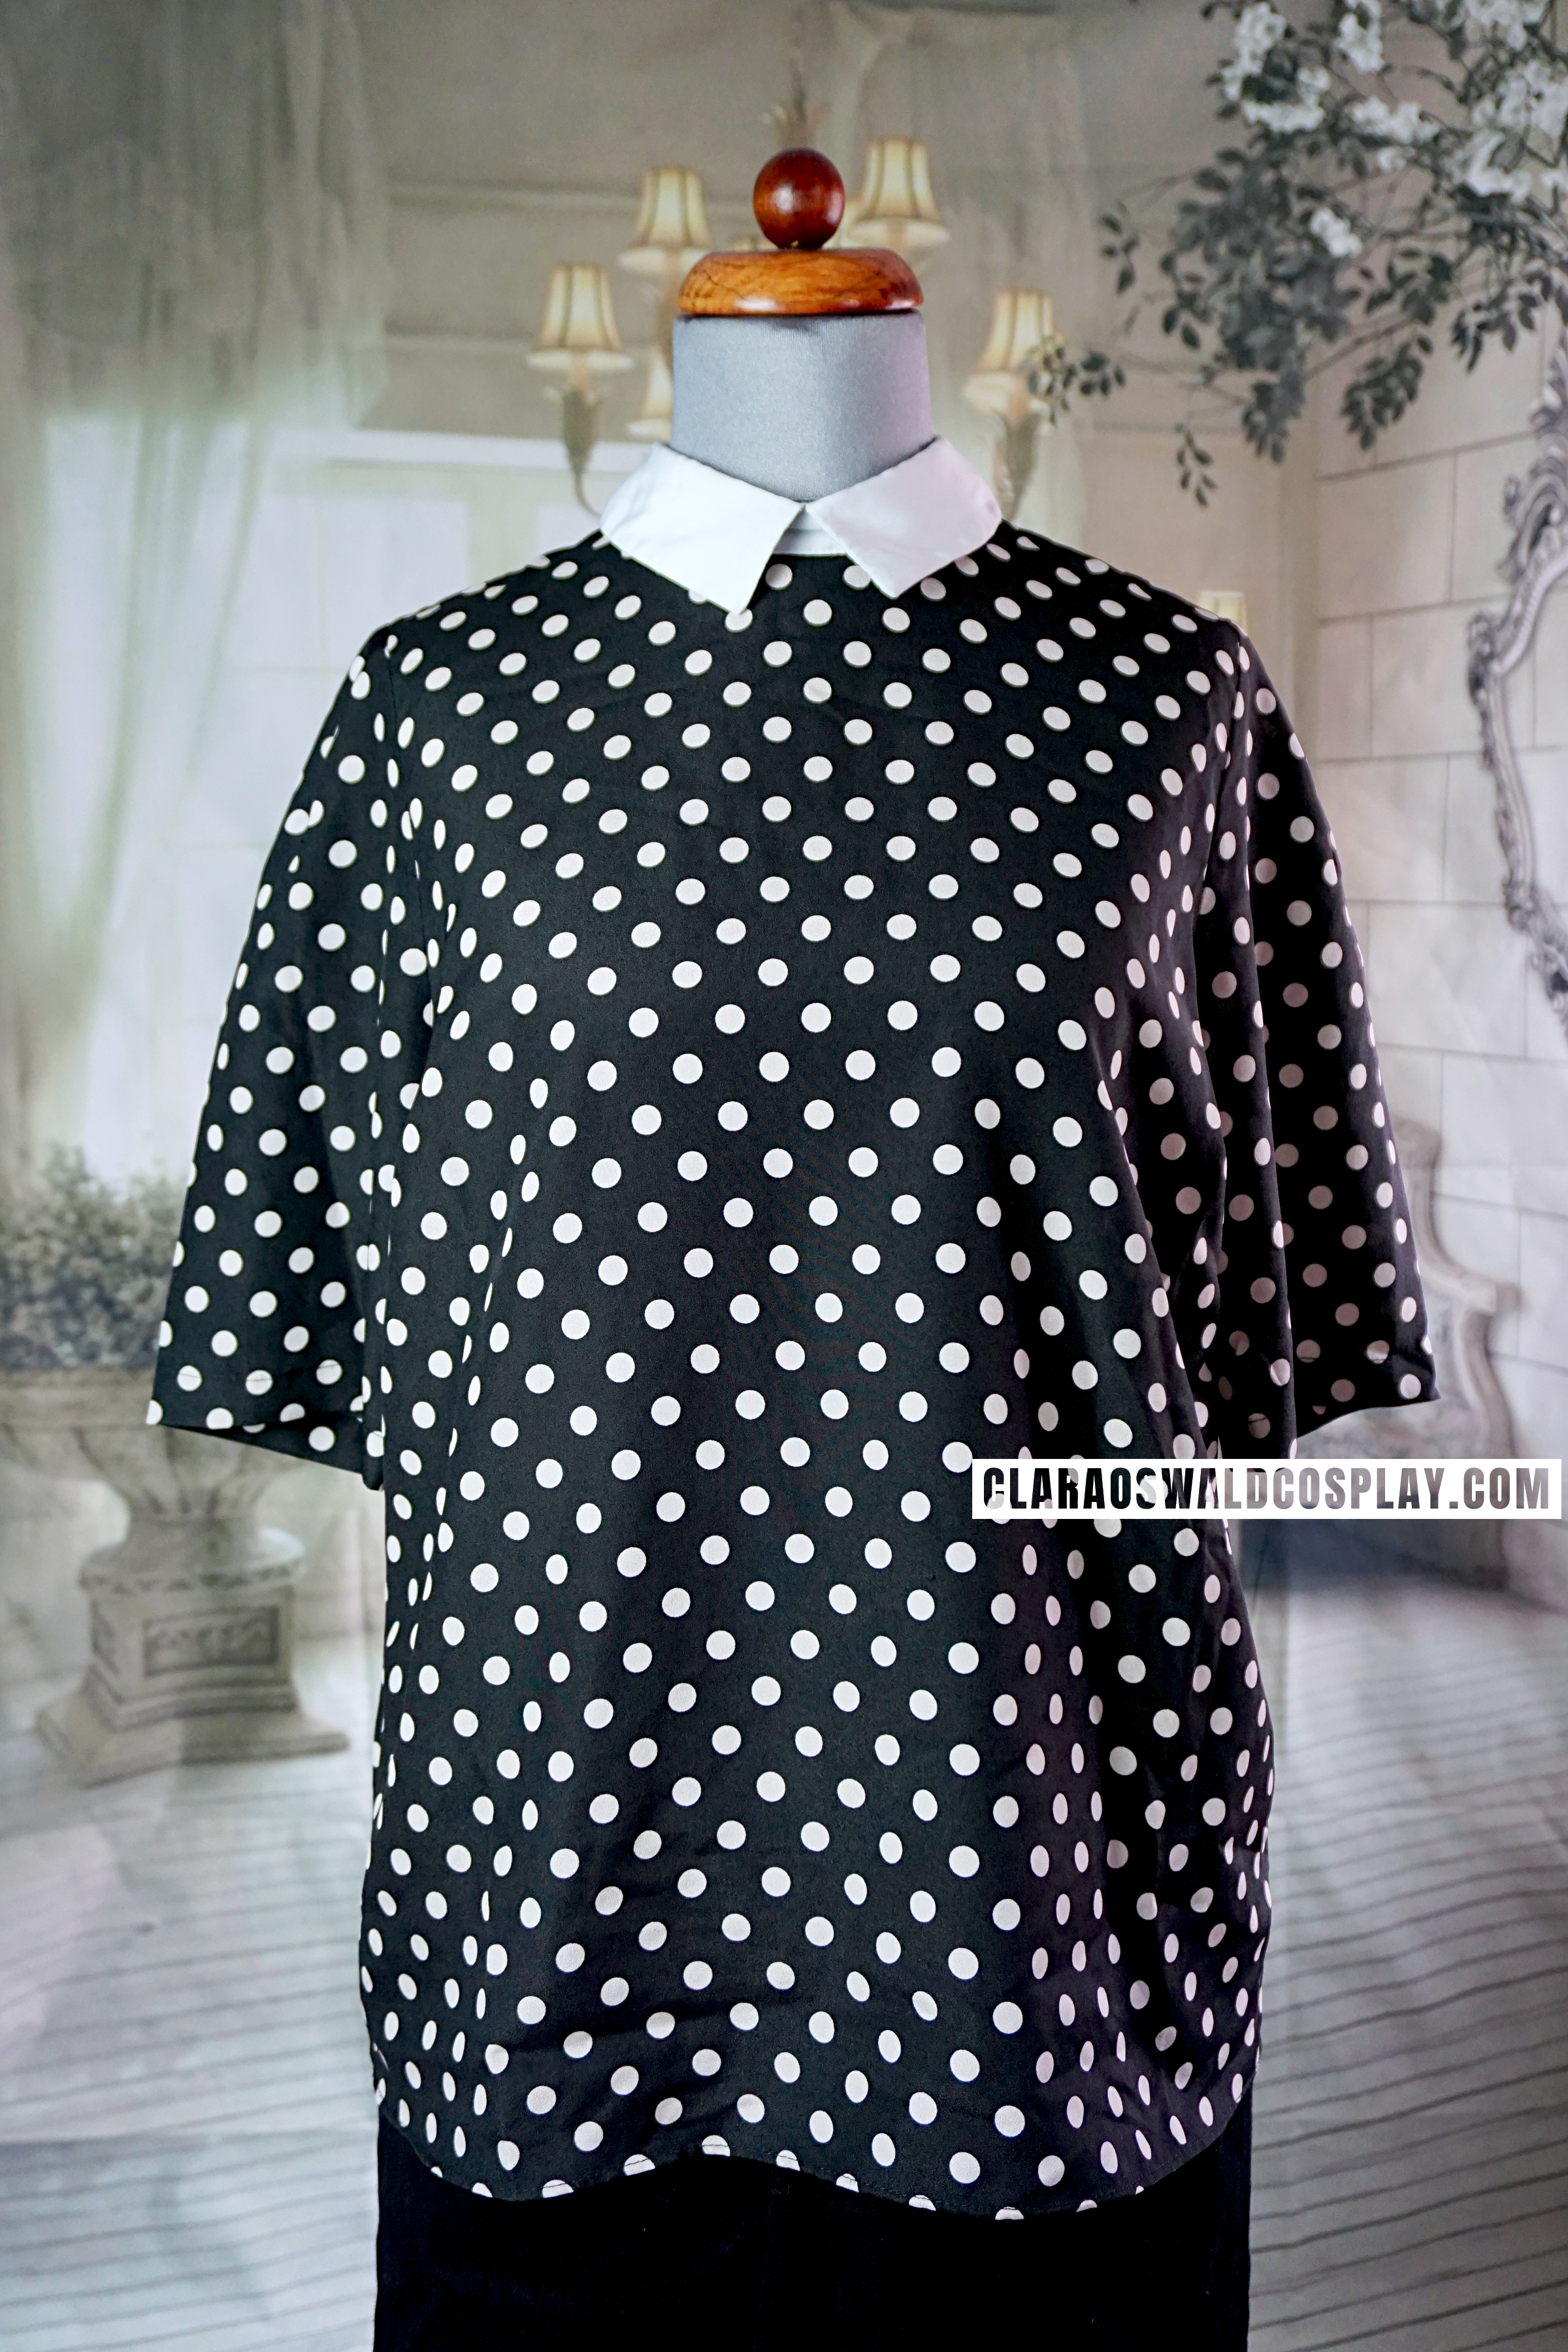 Full view of the River Island Polka Dot Shirt worn by Clara Oswald in In The Forest Of The Night.